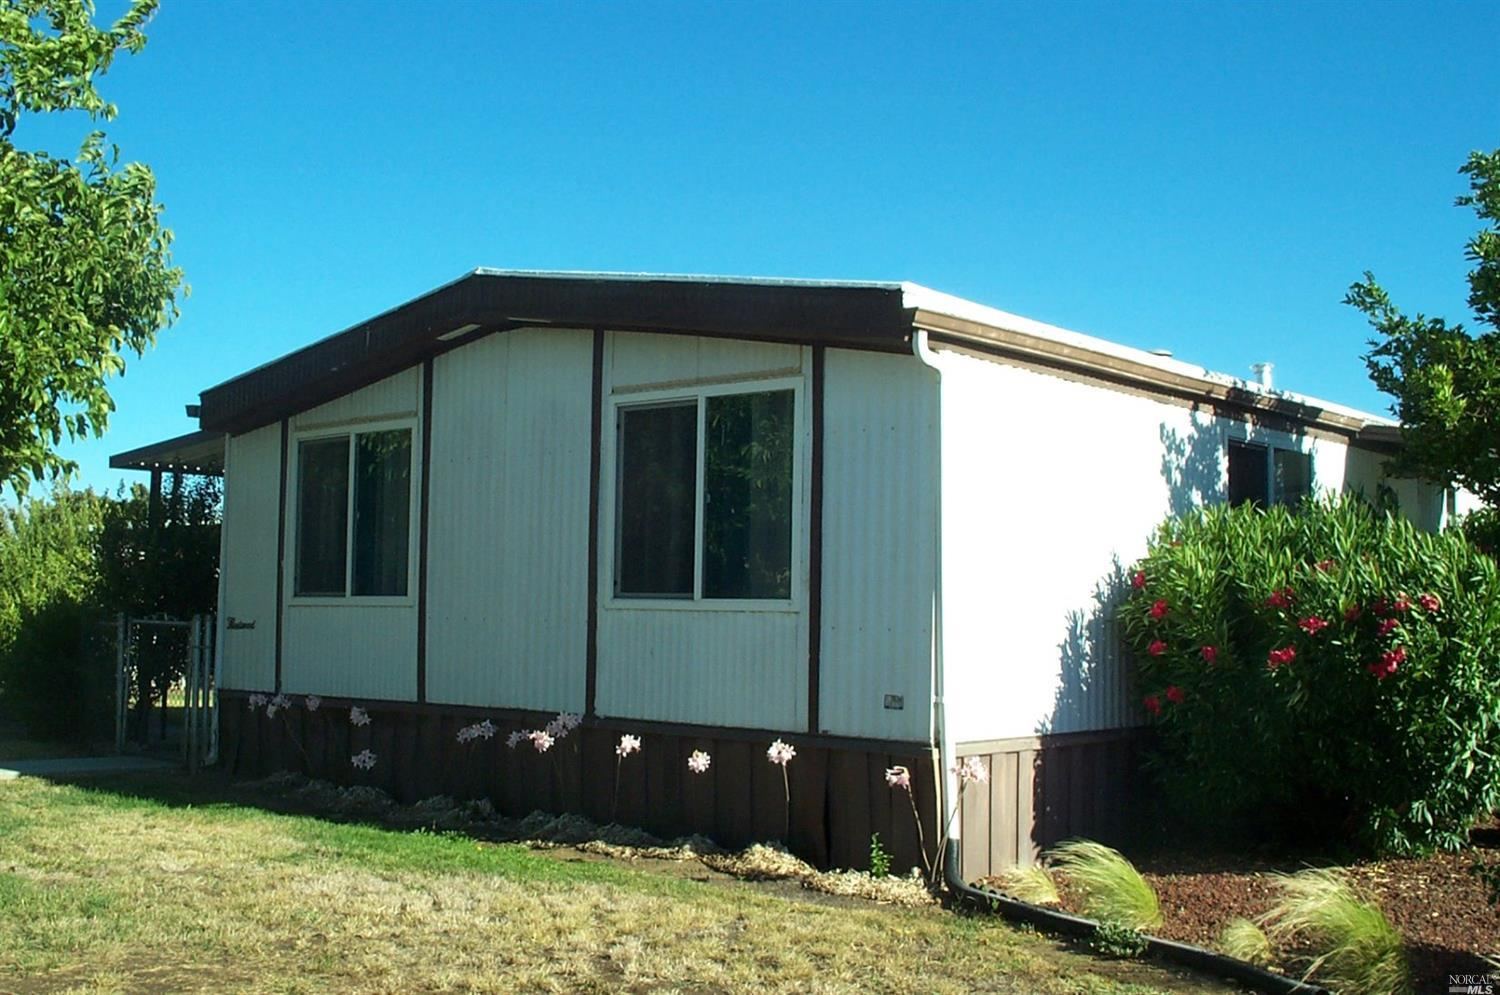 131 Chevy Chase Ct, Fairfield, CA 94533